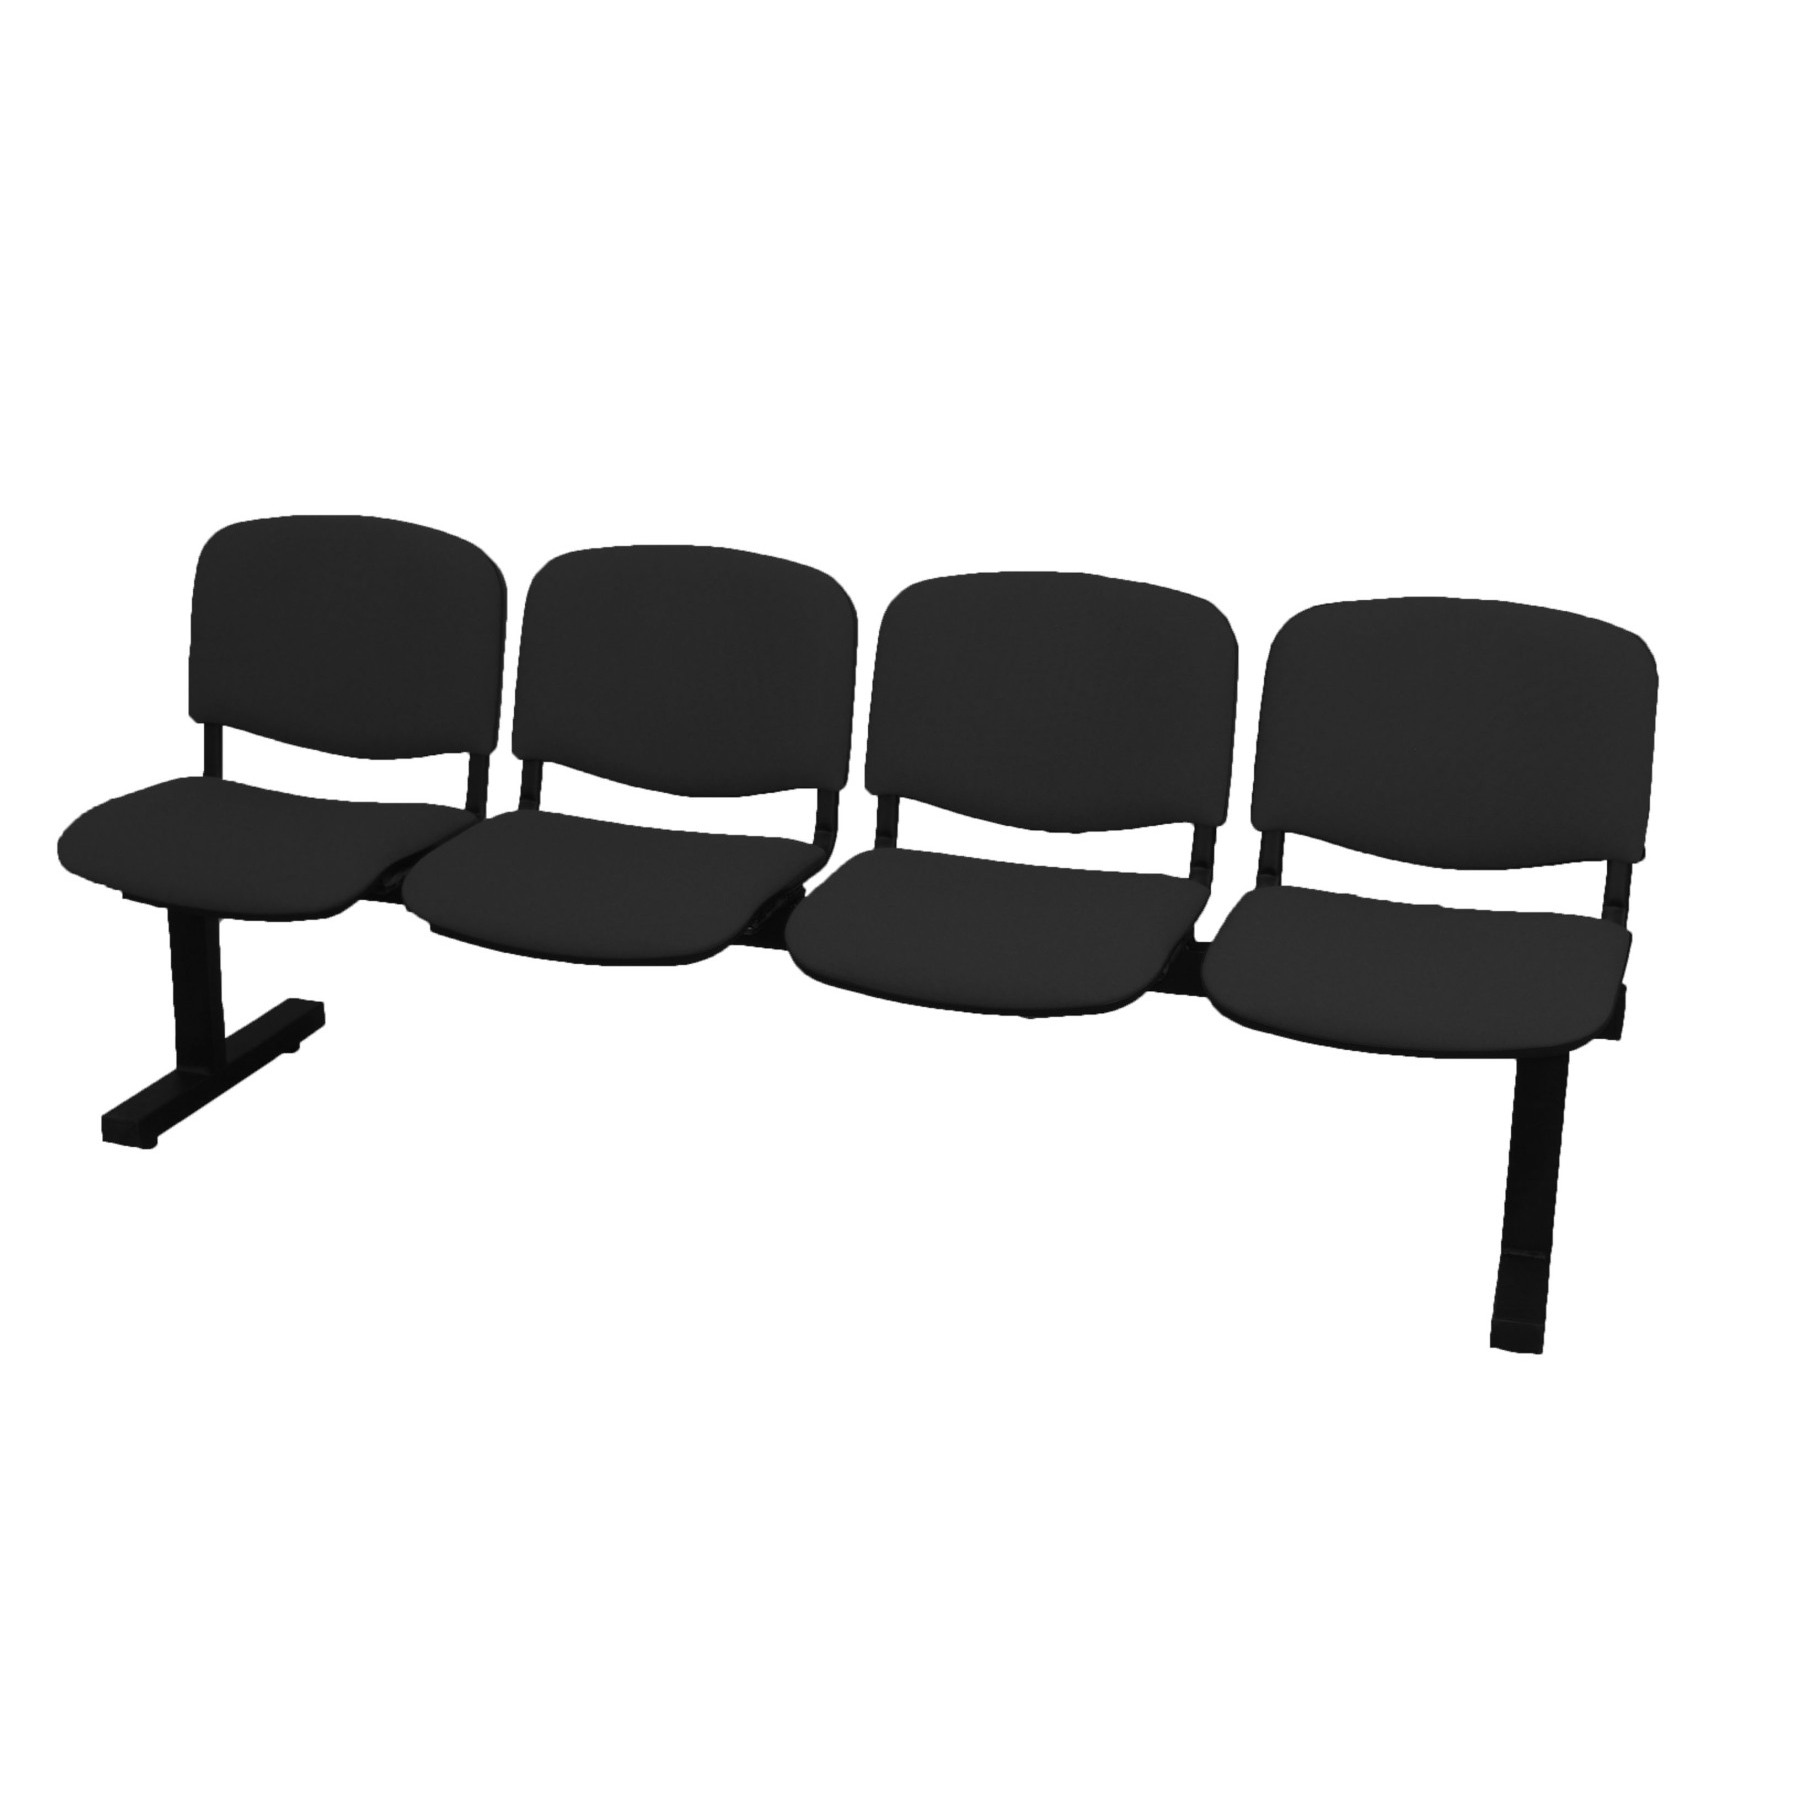 Bench Waiting From Four Squares And Iron's Structure In Black Color Up Seat And Backstop Upholstered In Tissue ARAN Co